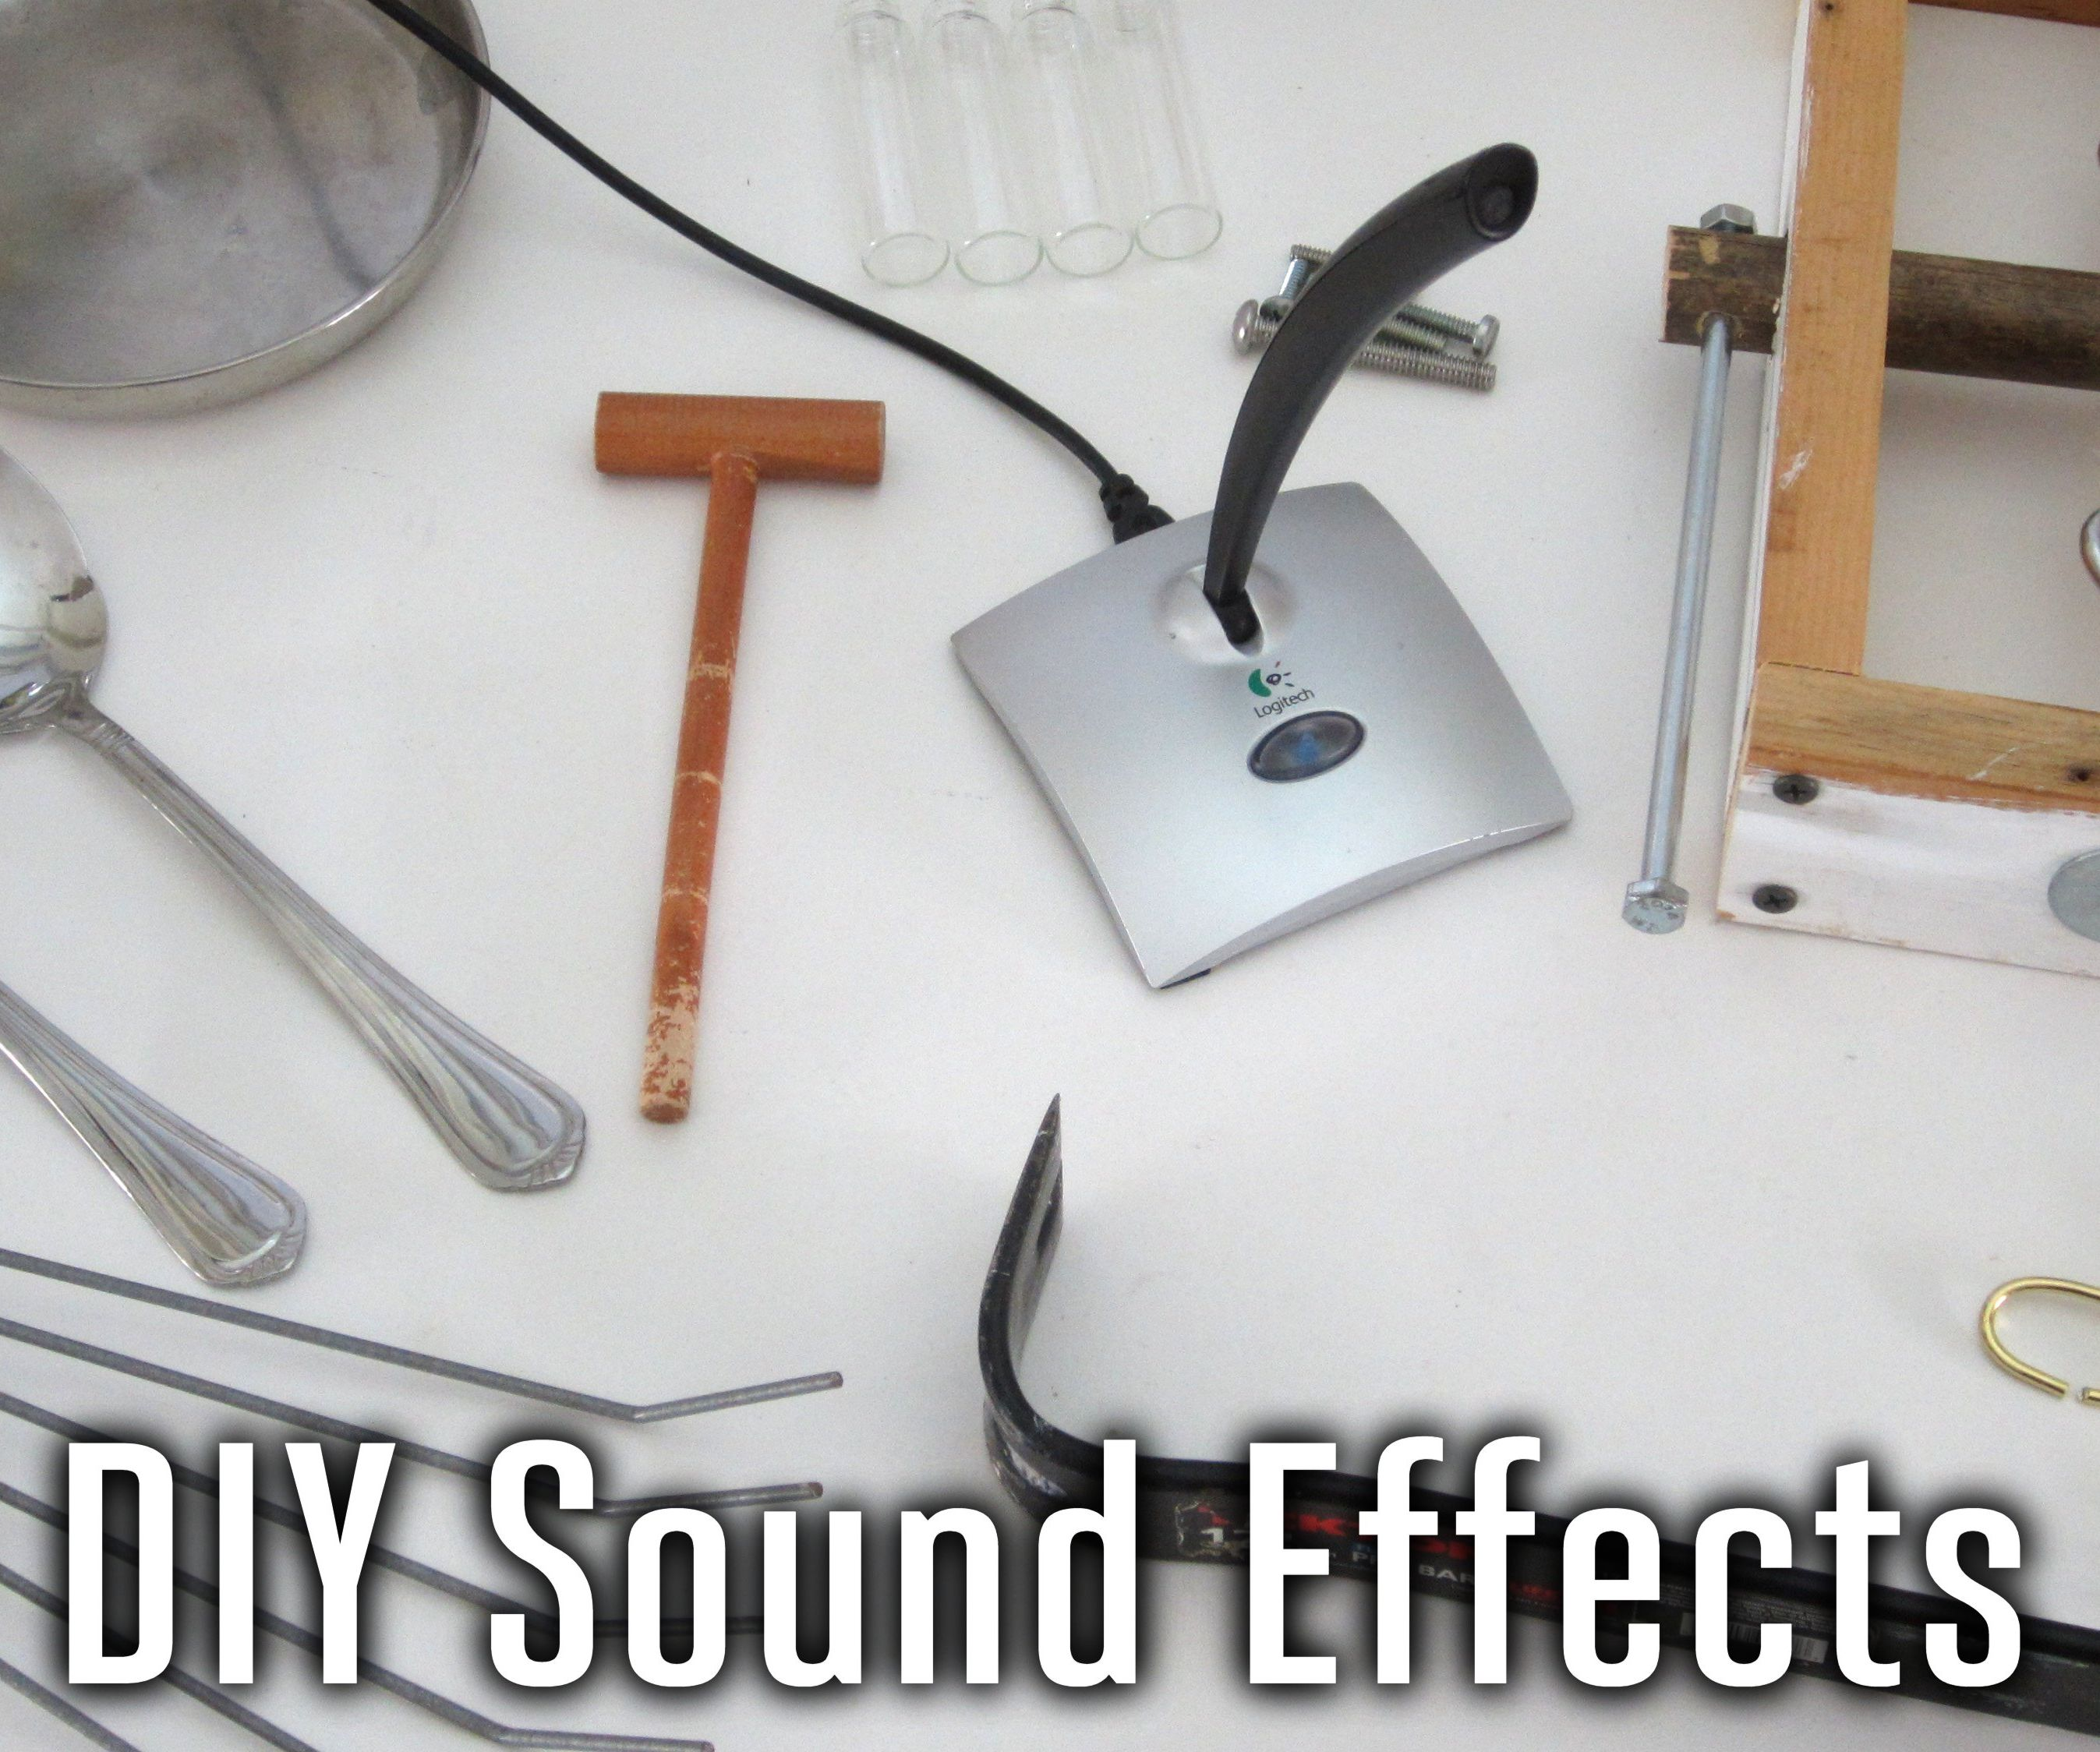 DIY Sound Effects